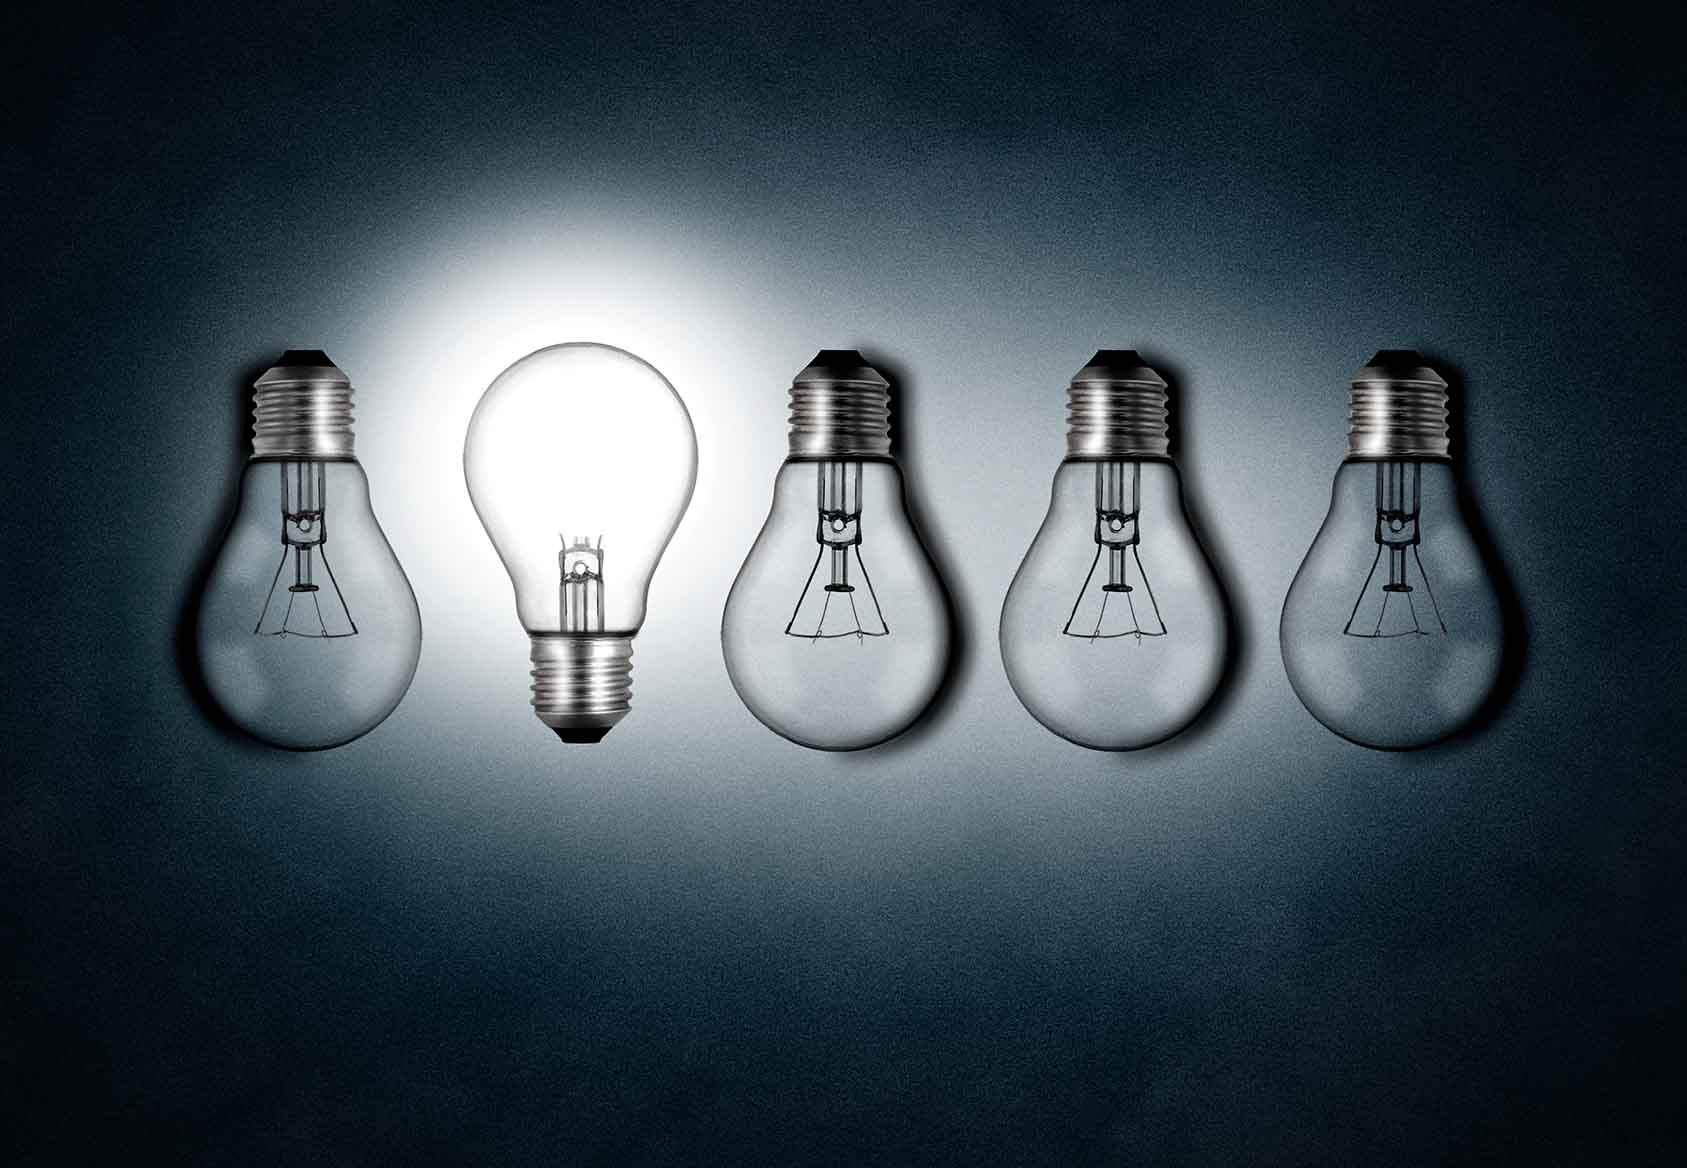 Illuminated lightbulb amid dim bulbs - creativity and innovation concept